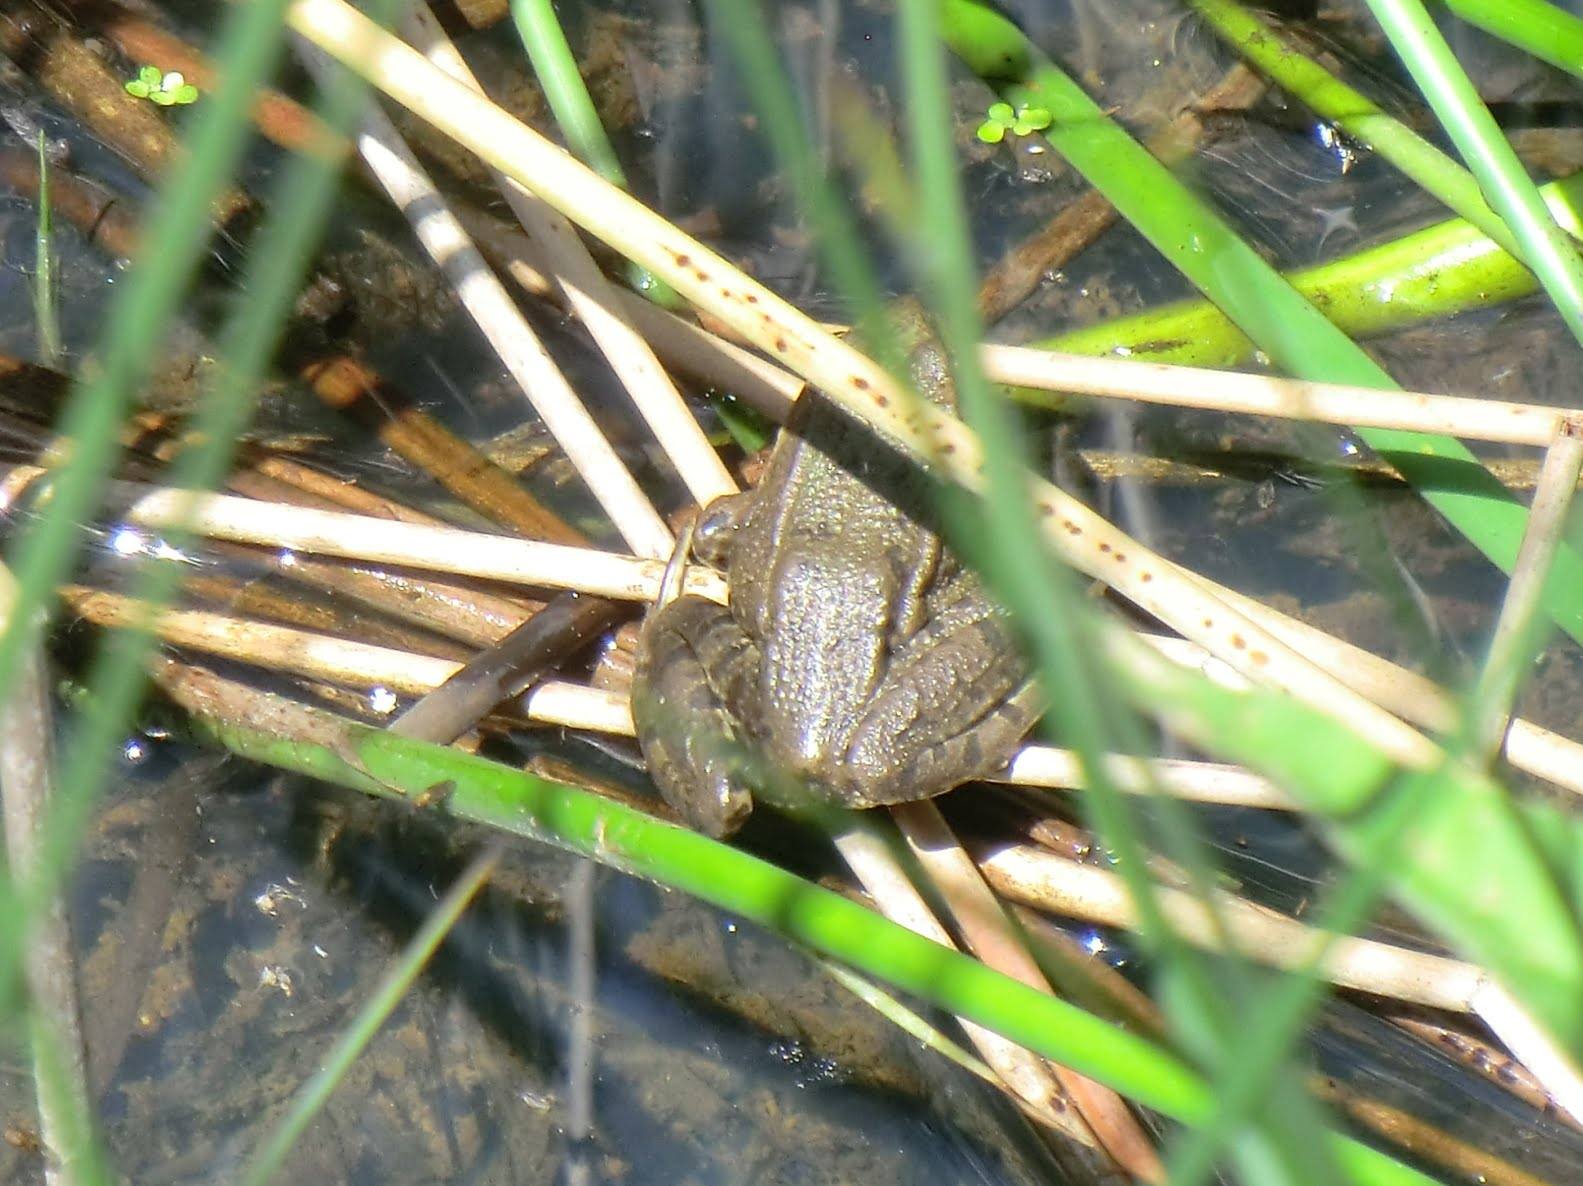 CIMG1707 Frog in the reeds